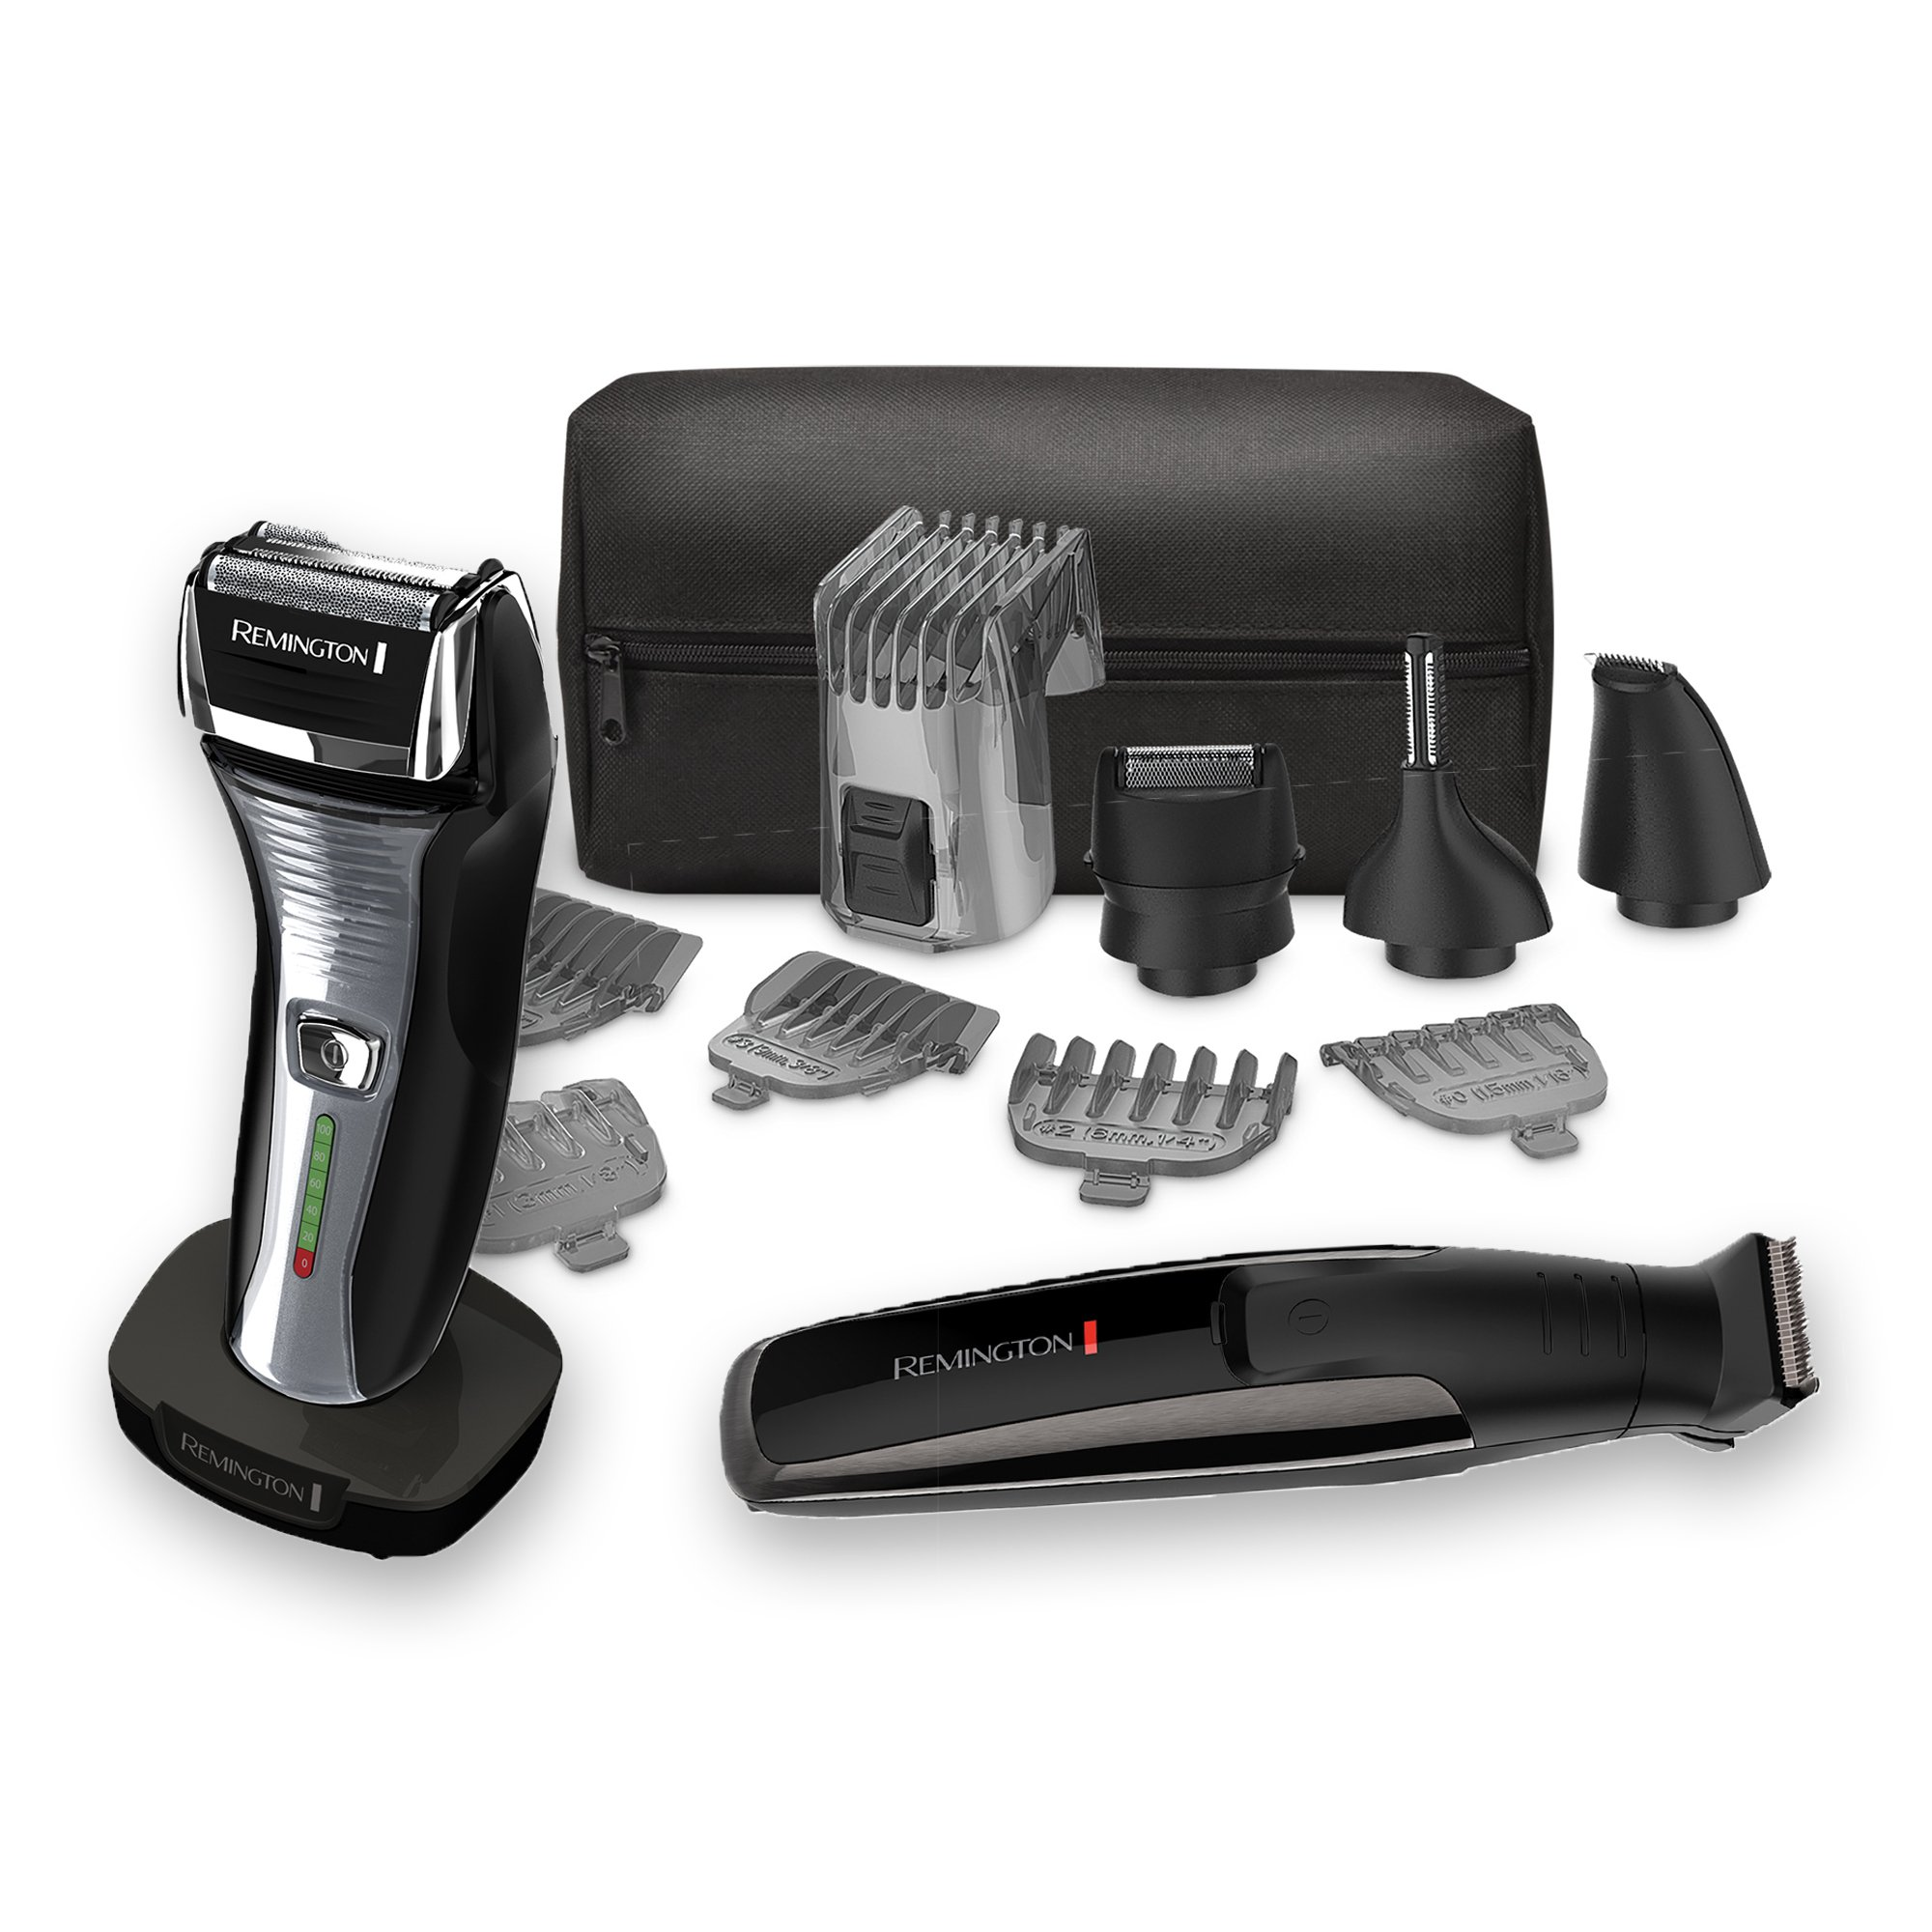 Remington Men's Grooming Bundle: The Crafter Beard Boss Style and Detail Kit along with a Men's Electric foil shaver by Remington